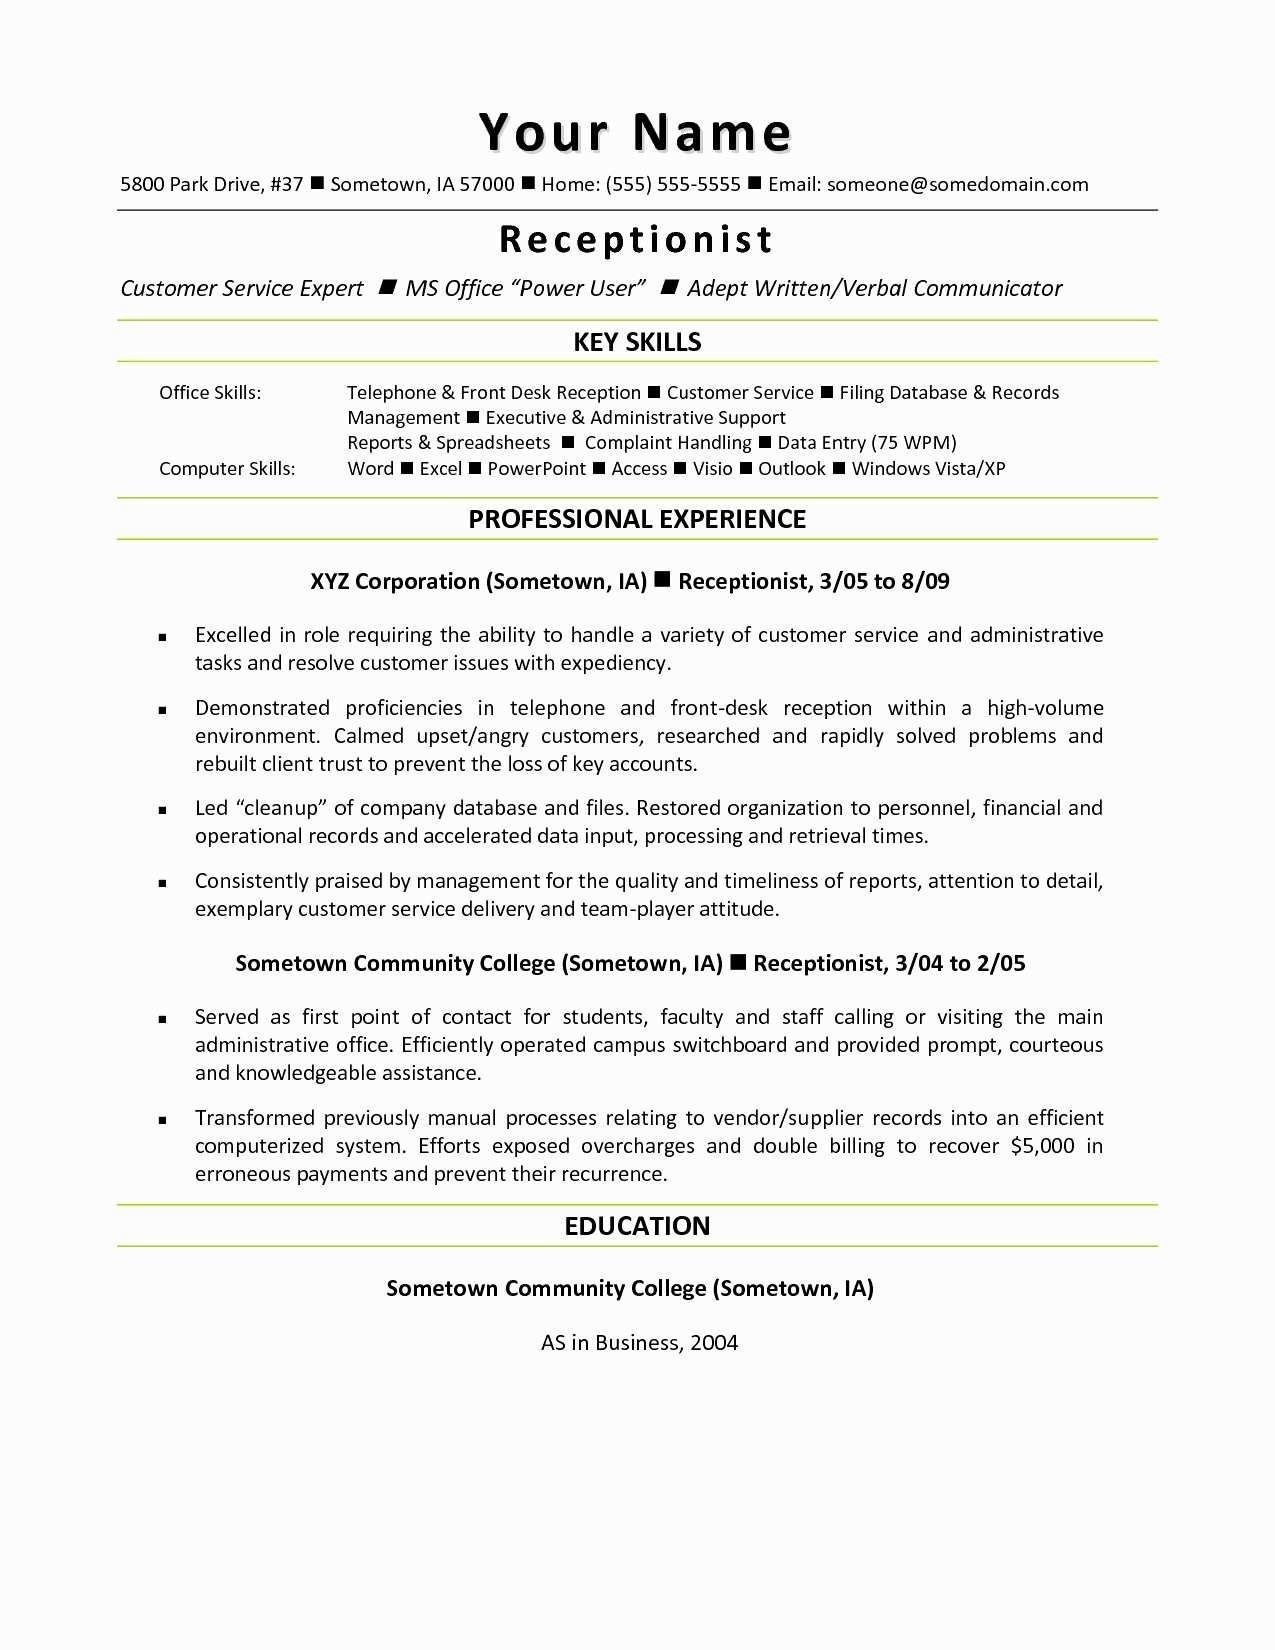 Investment Banking Resume Sample - Investment Banking Experience Resume You Must Know Resume Insight